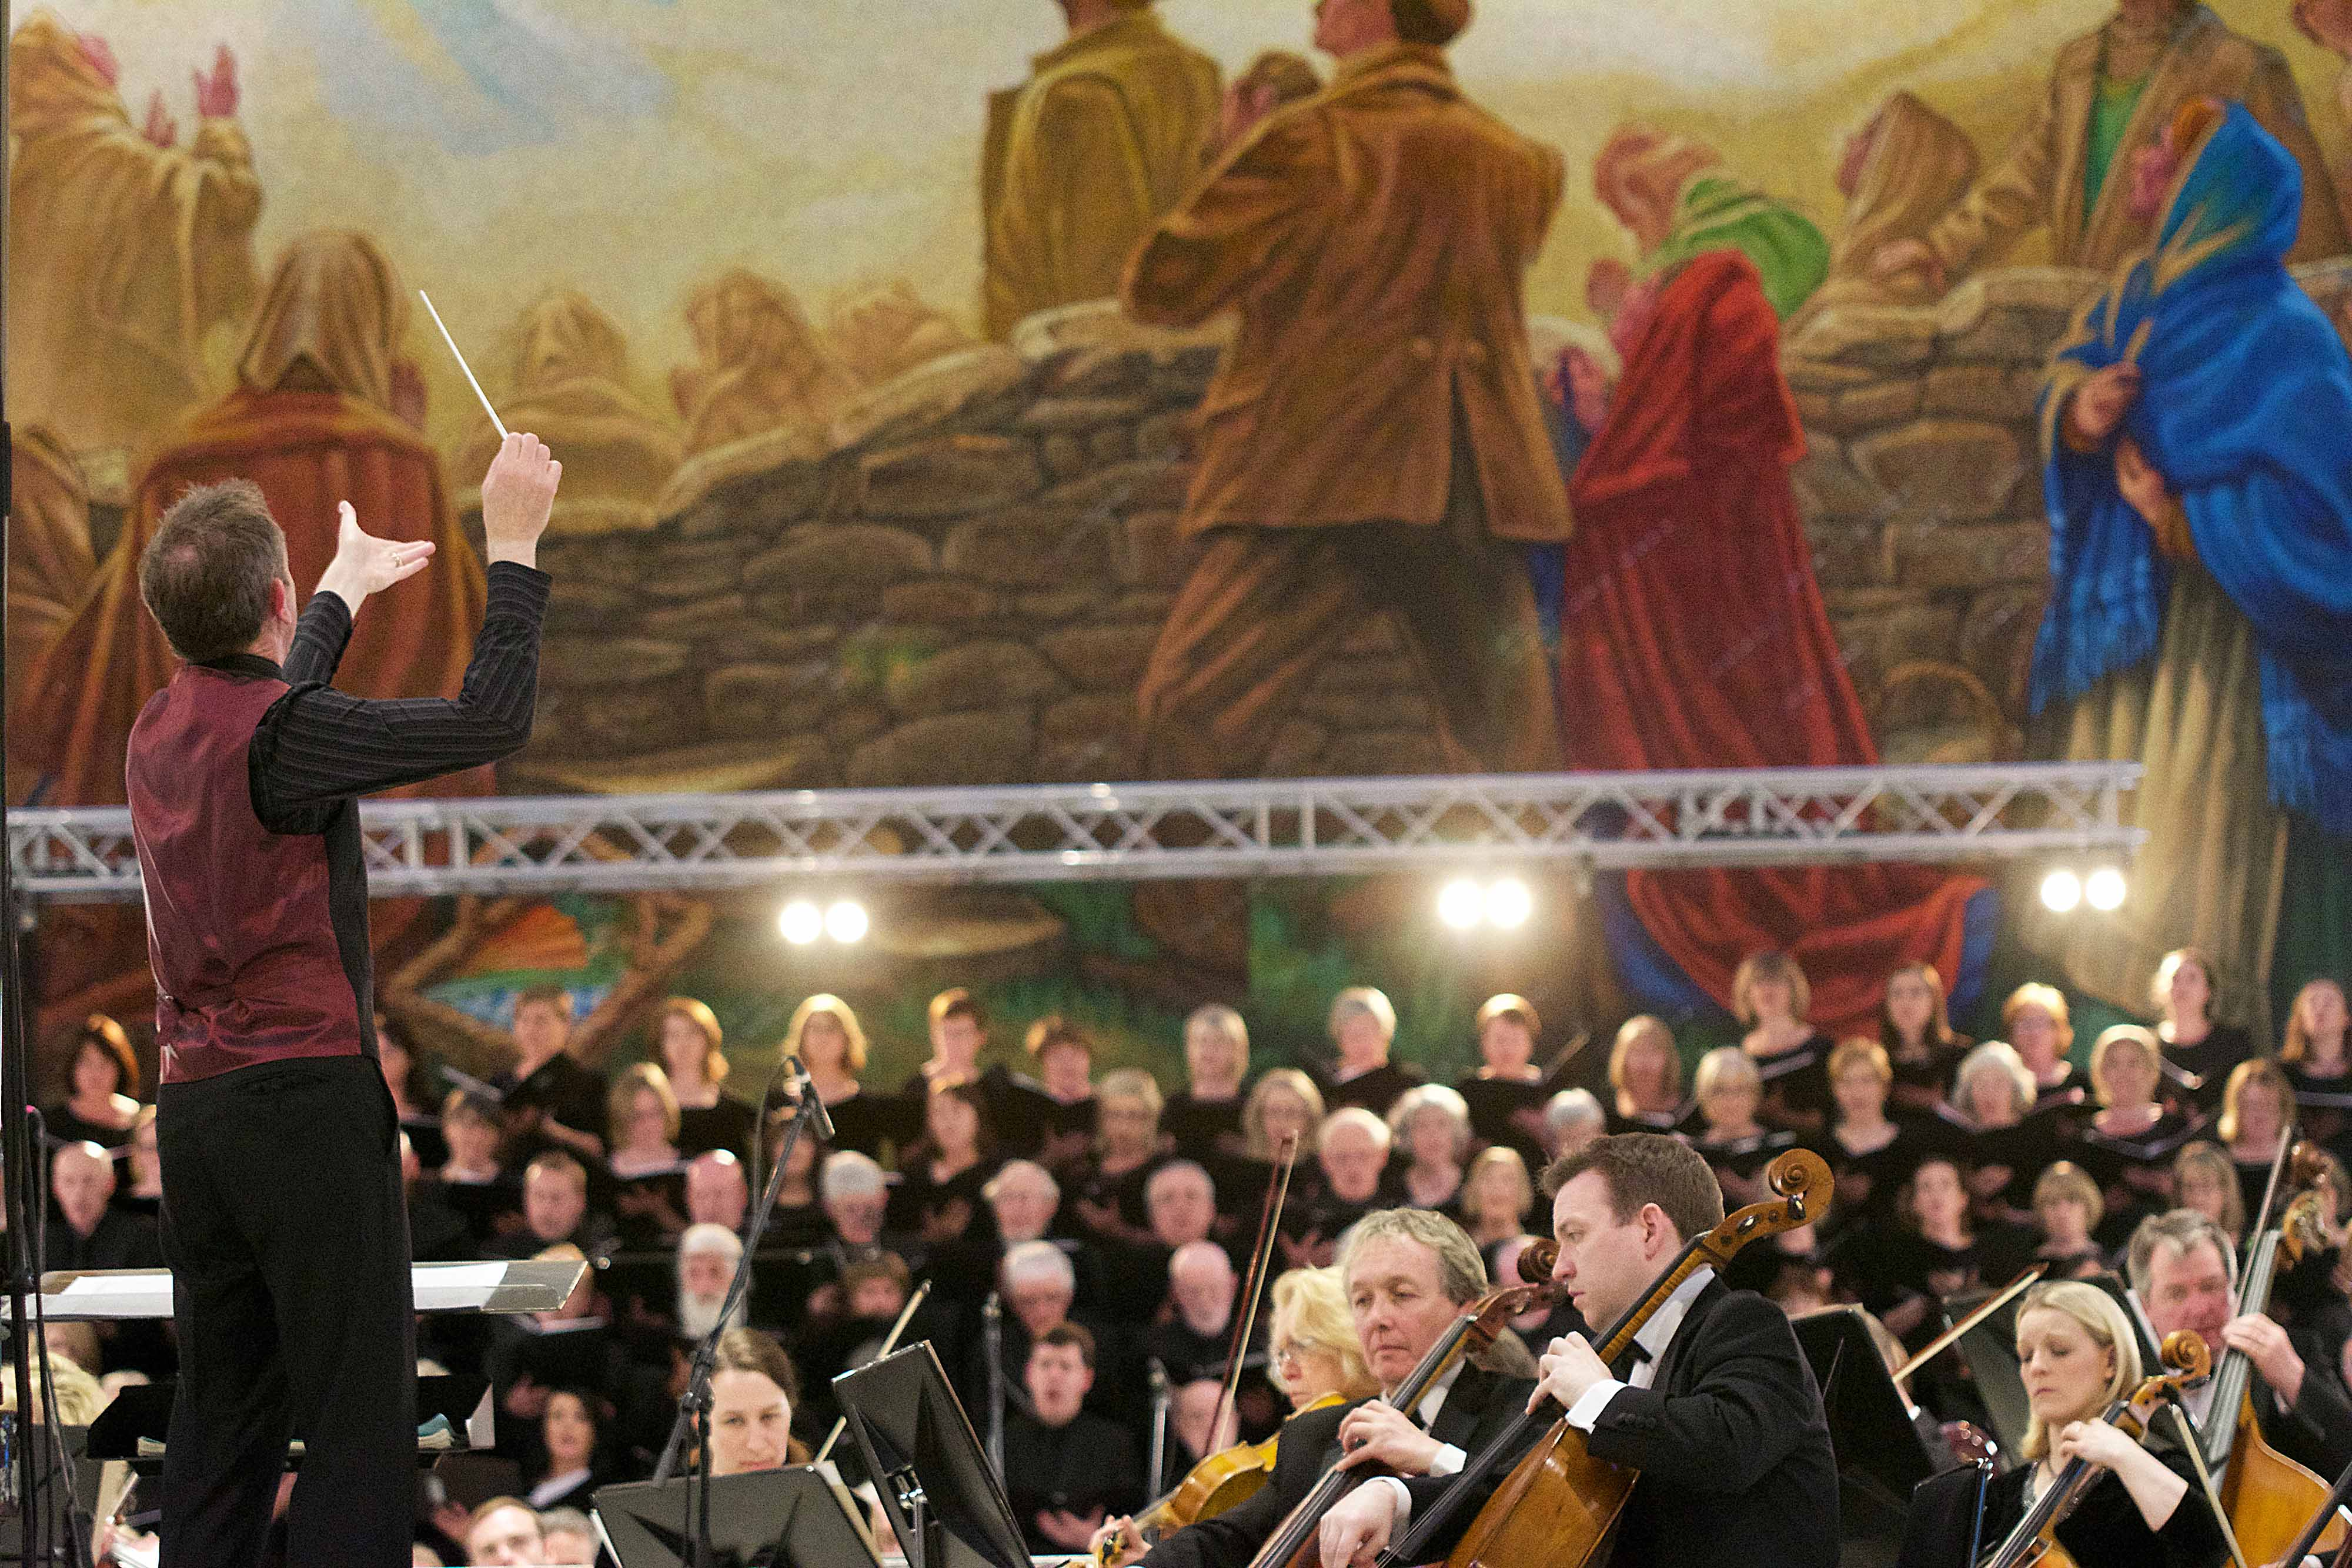 David Brophy conducts the RTÉ Concert Orchestra and the 120-strong Peace Choir at the Concert For Peace, held at Knock Basilica, May 14th. The concert was presented by the Mayo International Choral Festival in association with the Western Development Commission.